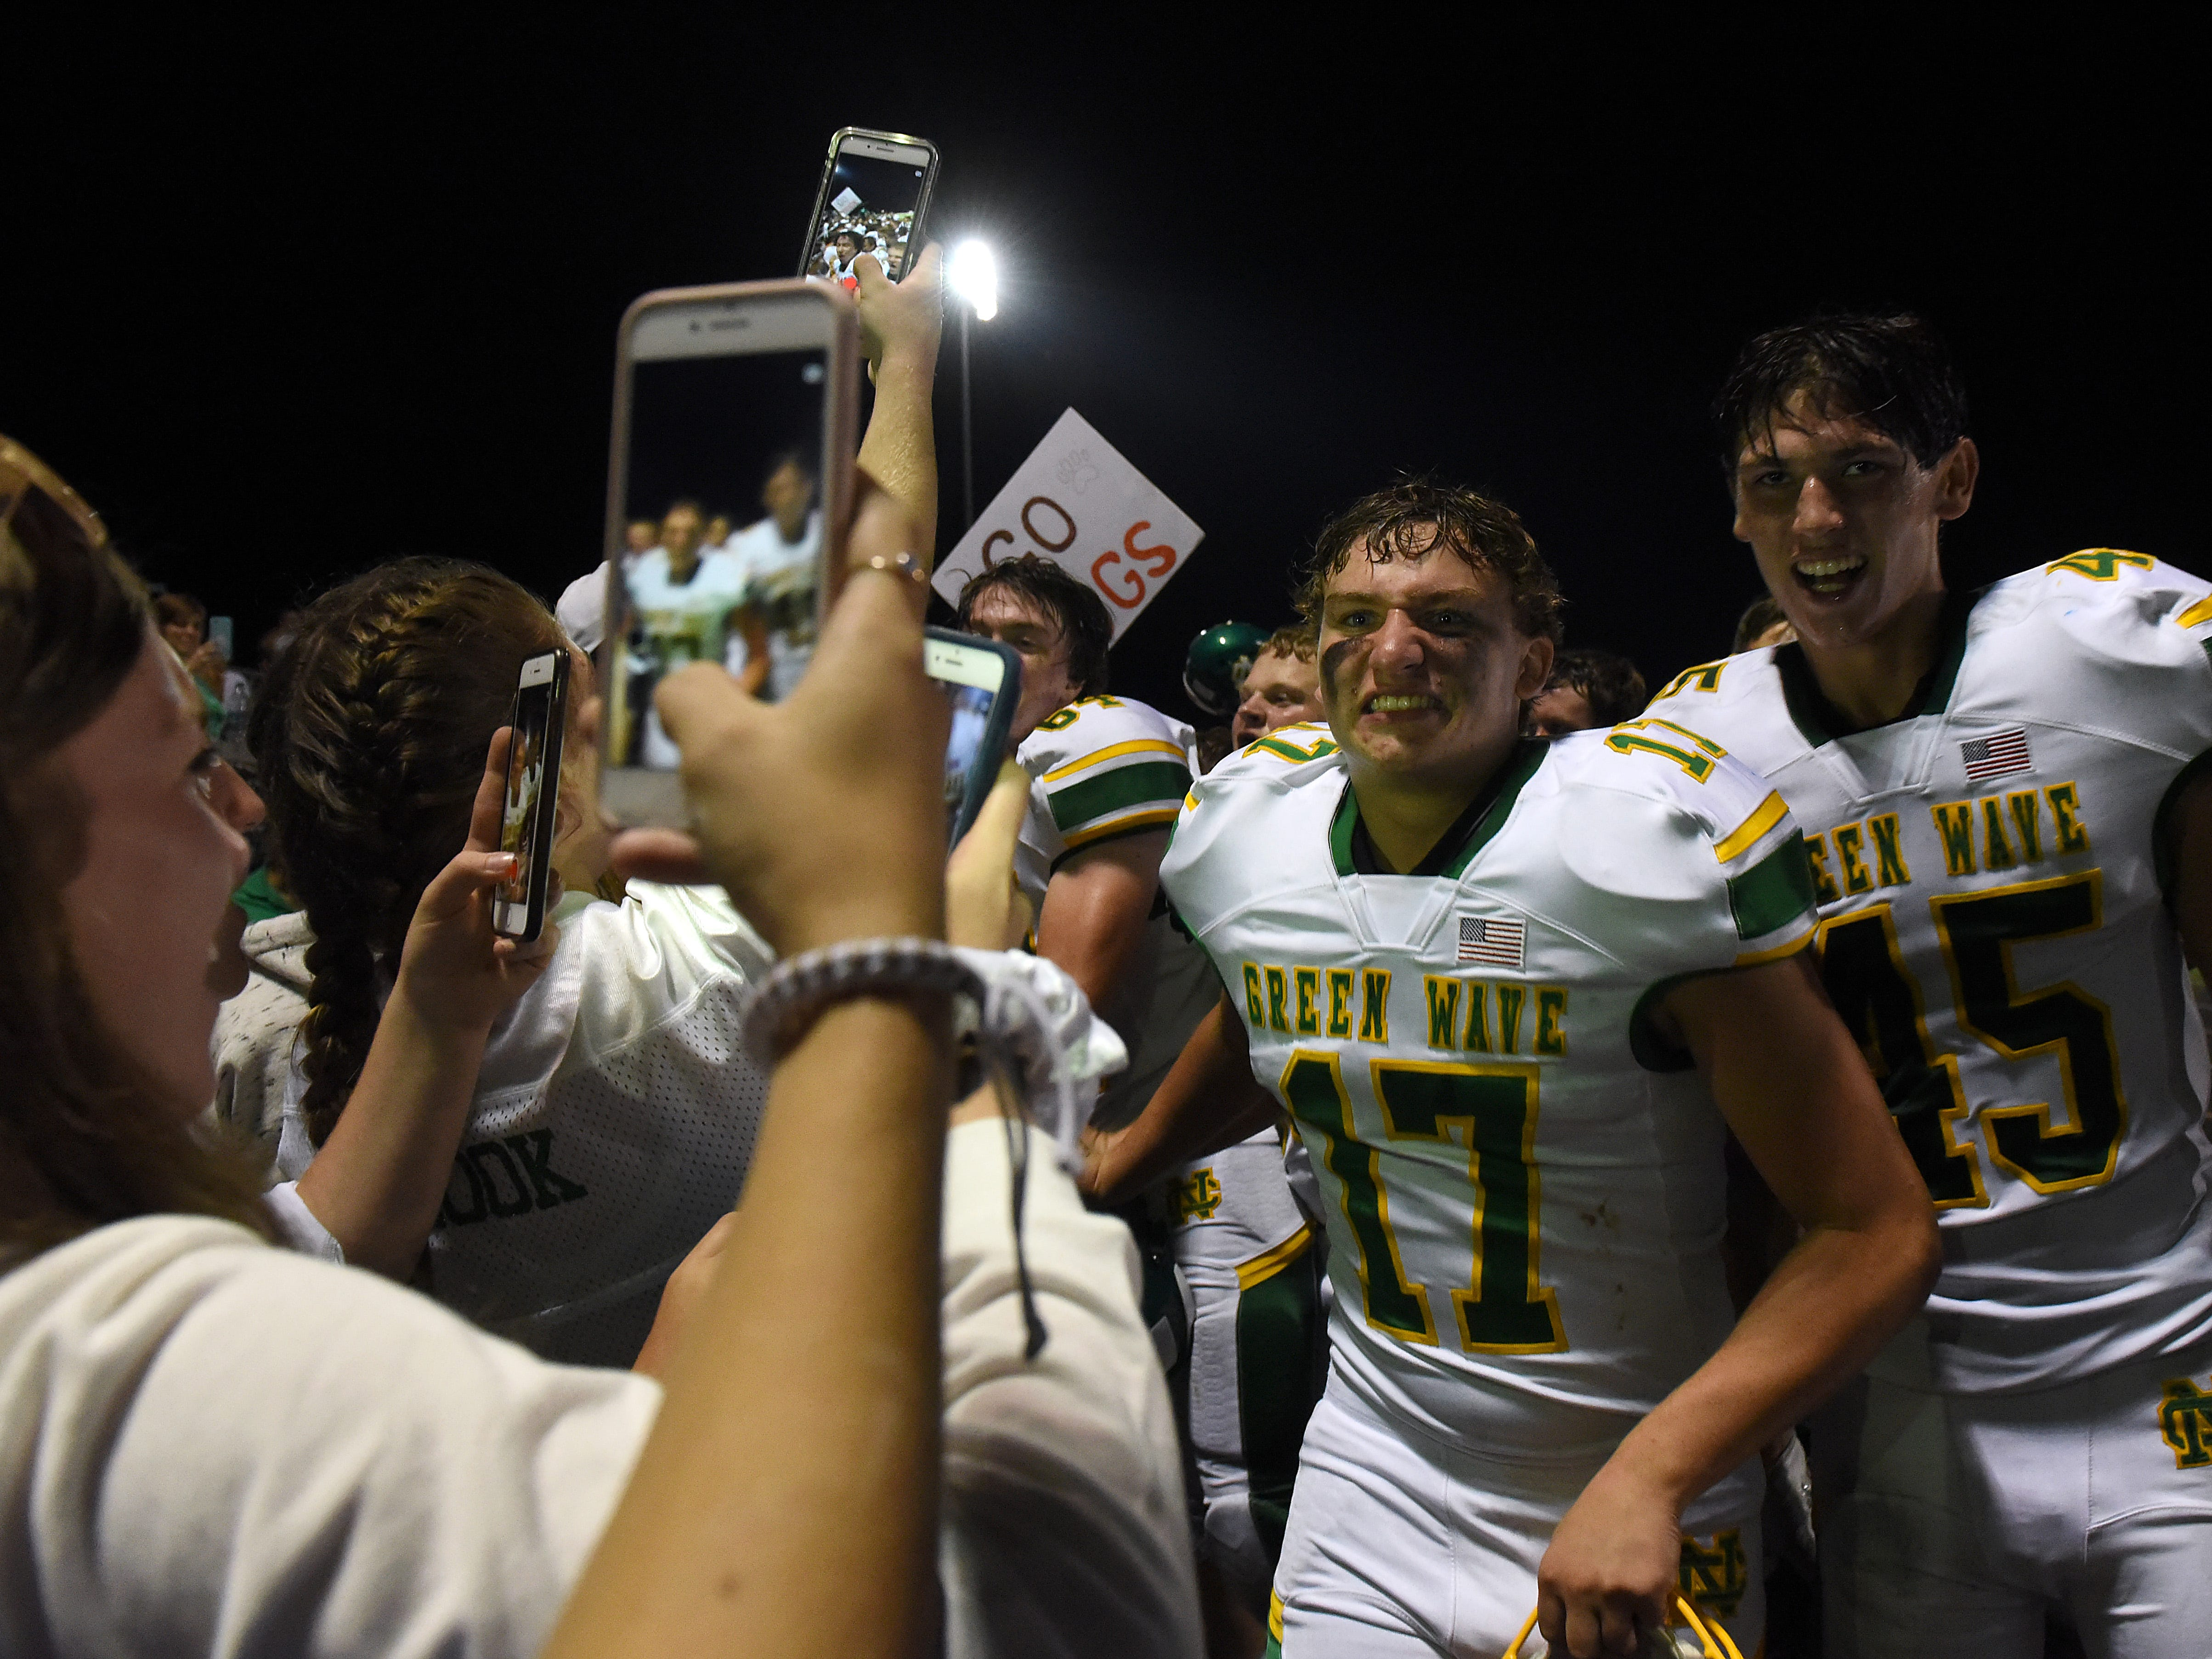 Newark Catholic football players Keegan Gallagher and Drew Hess celebrate the Green Wave's 17-13 victory against Maysville with the student section.